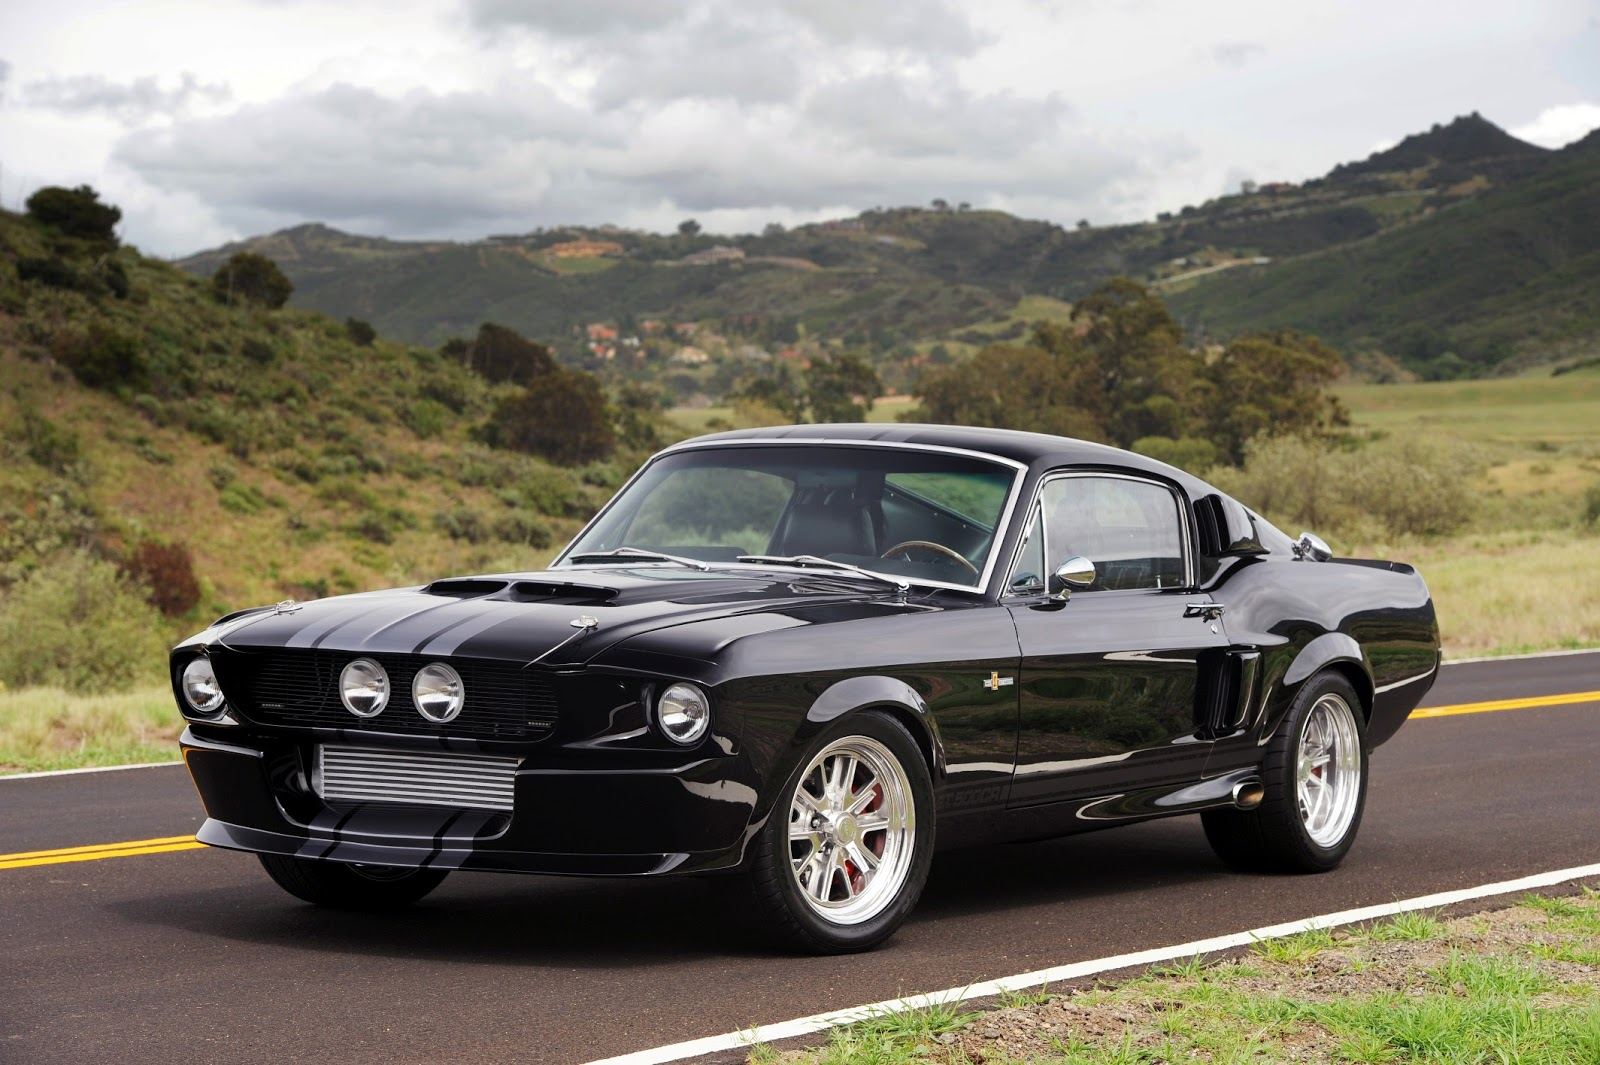 Ford Mustang Shelby GT 500 1967 - Welcome to Expert Drivers